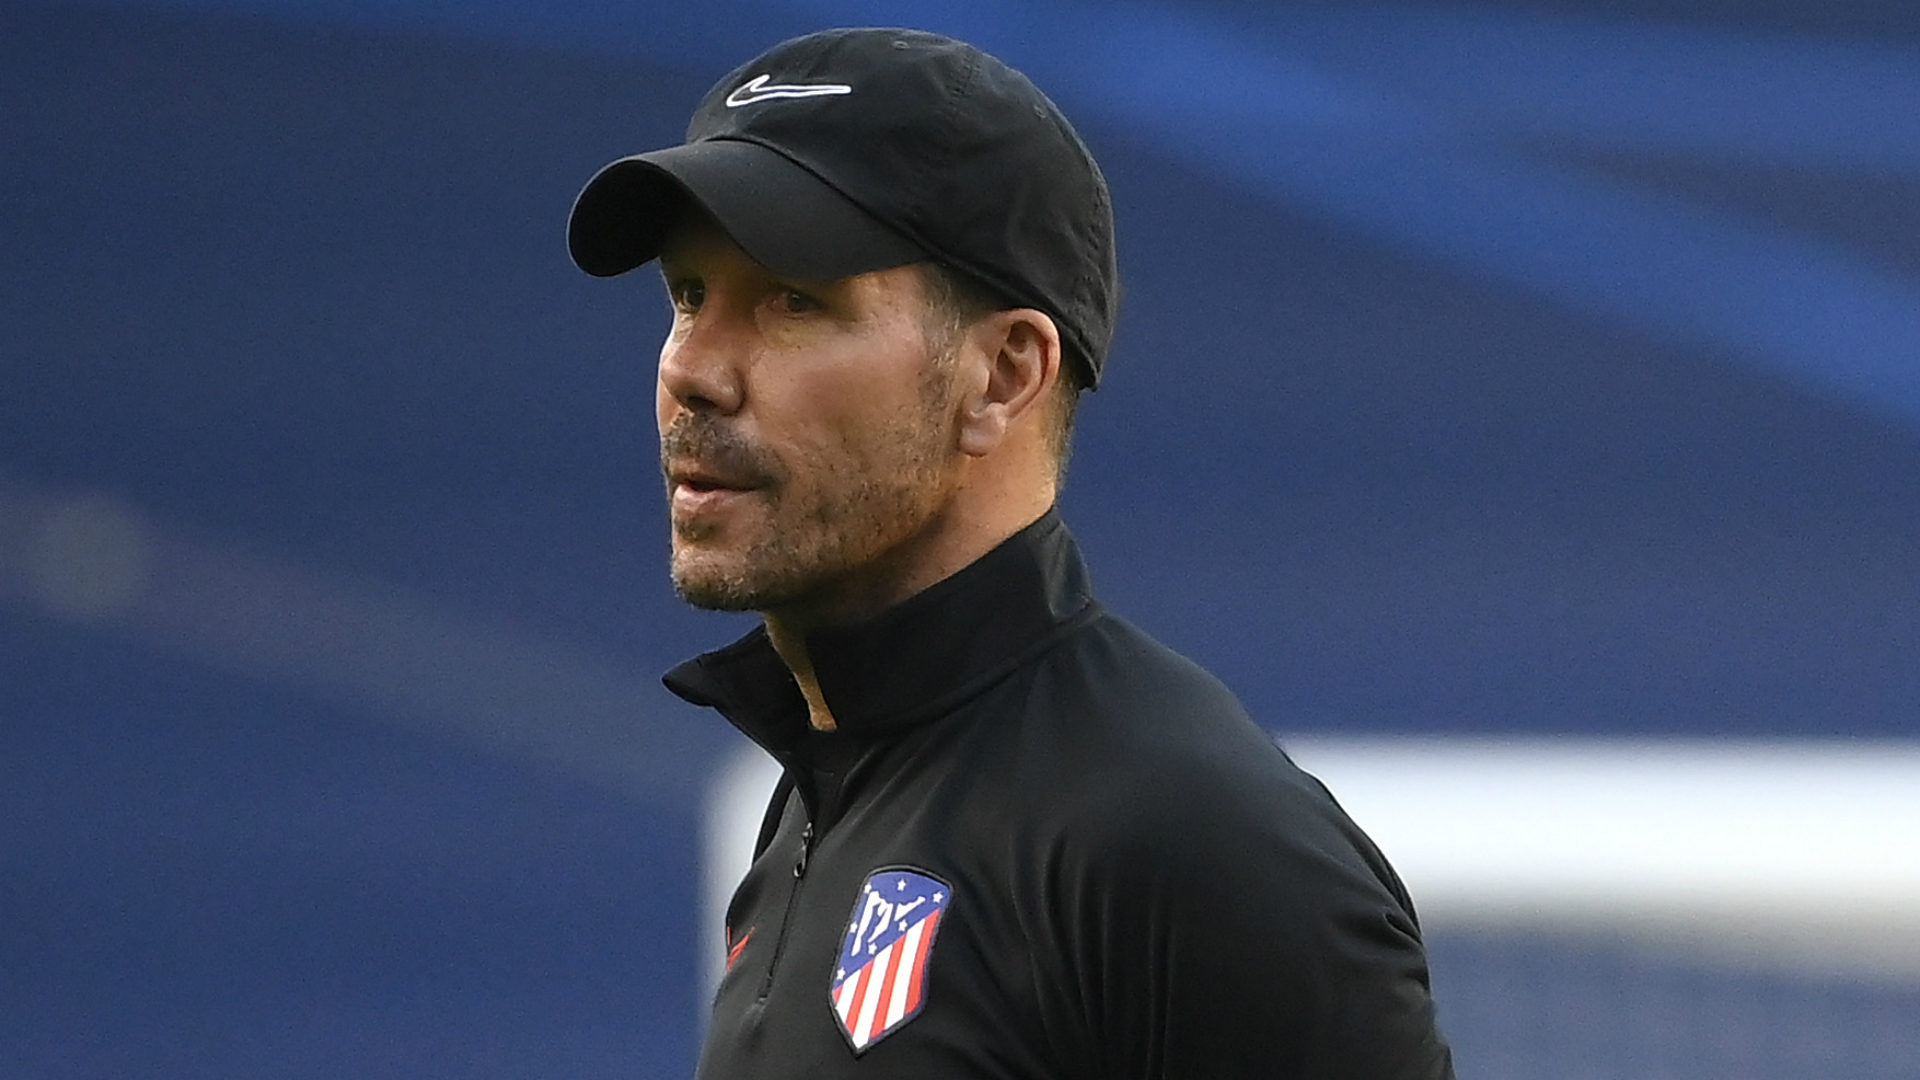 'A myth is leaving us' - Simeone says Maradona will live on forever